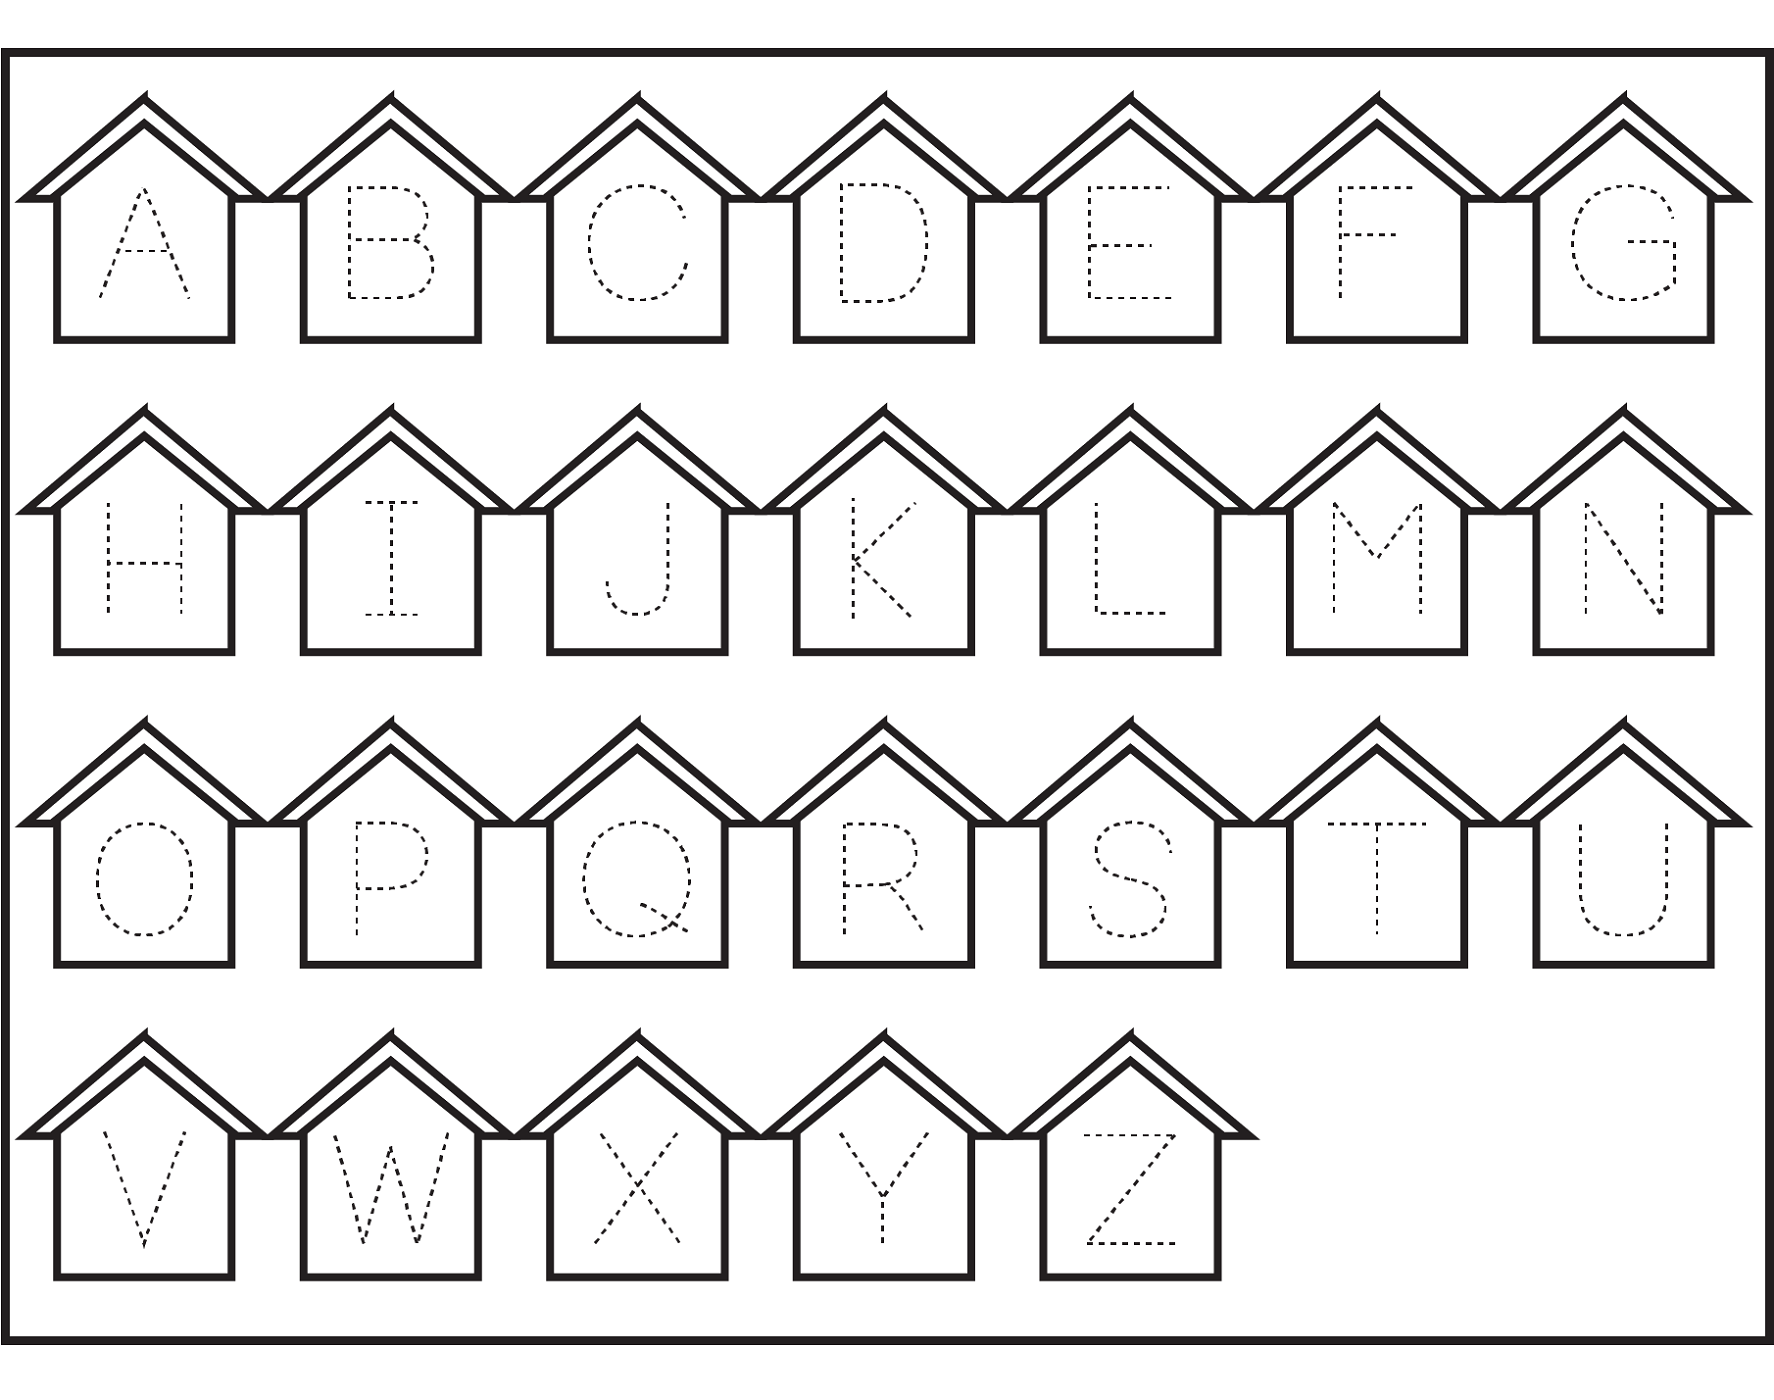 abc traceable worksheets printable